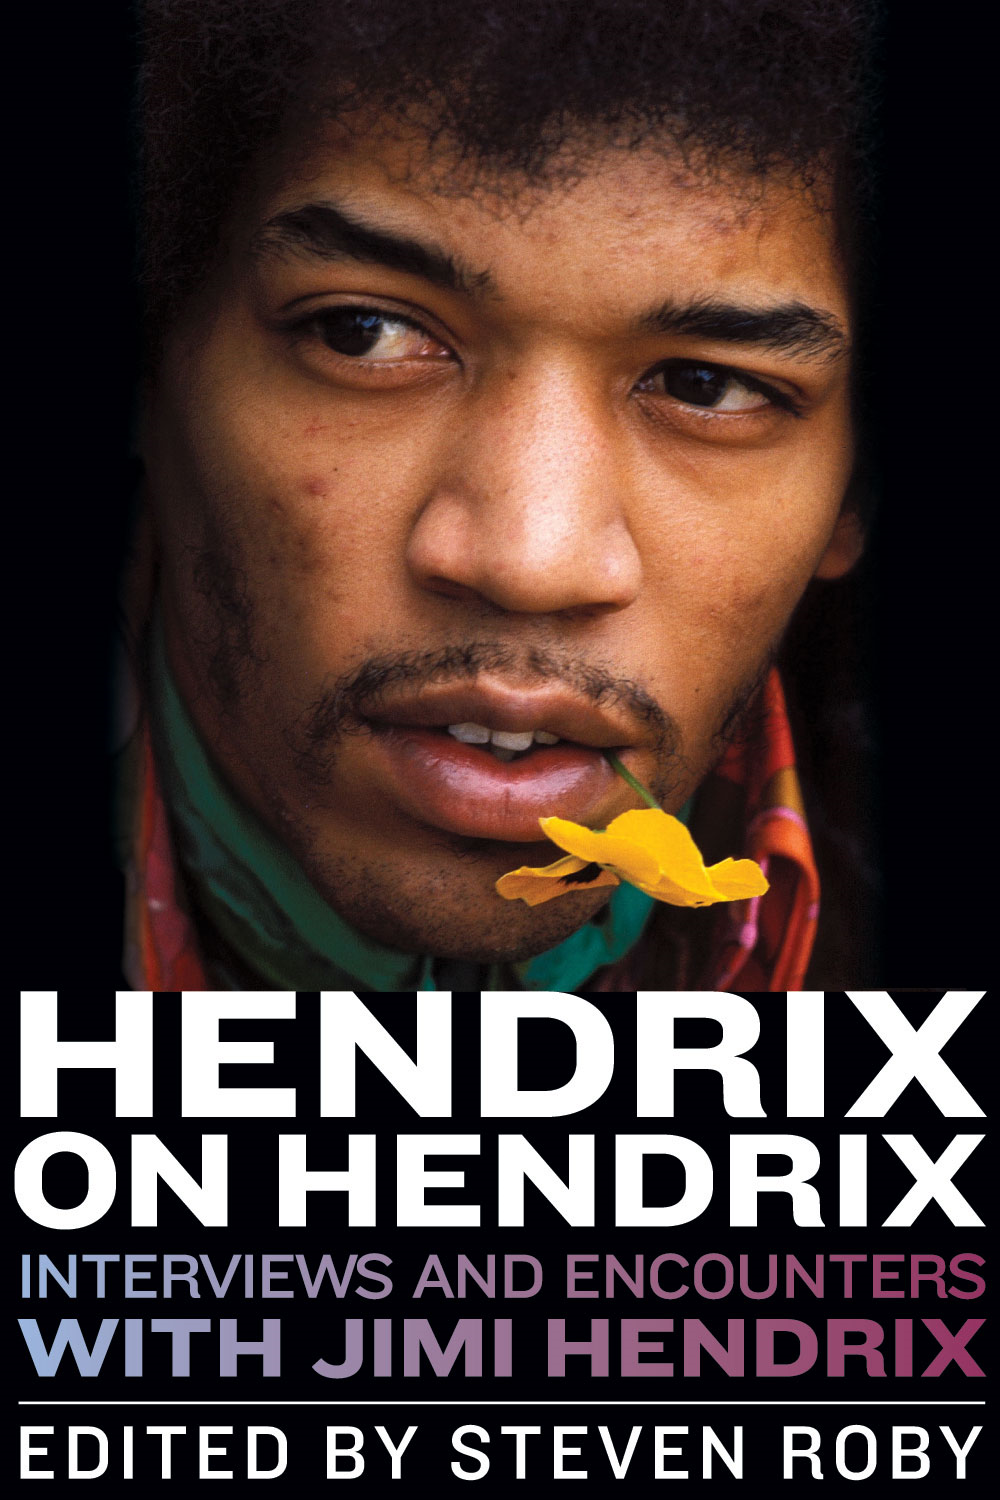 Hendrix on Hendrix: Interviews and Encounters with Jimi Hendrix By: